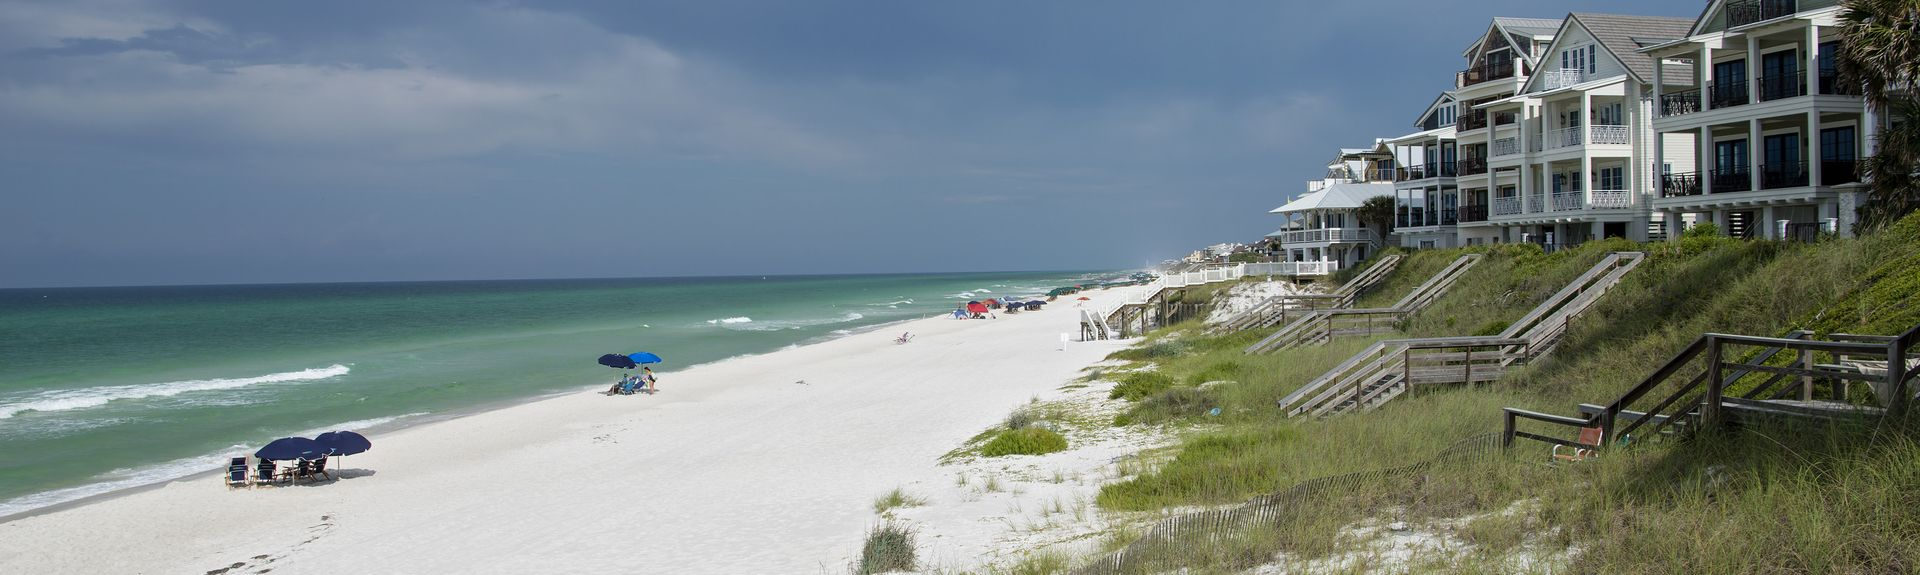 Rosemary Beach, Panama City Beach, Walton County, Florida, United States of America